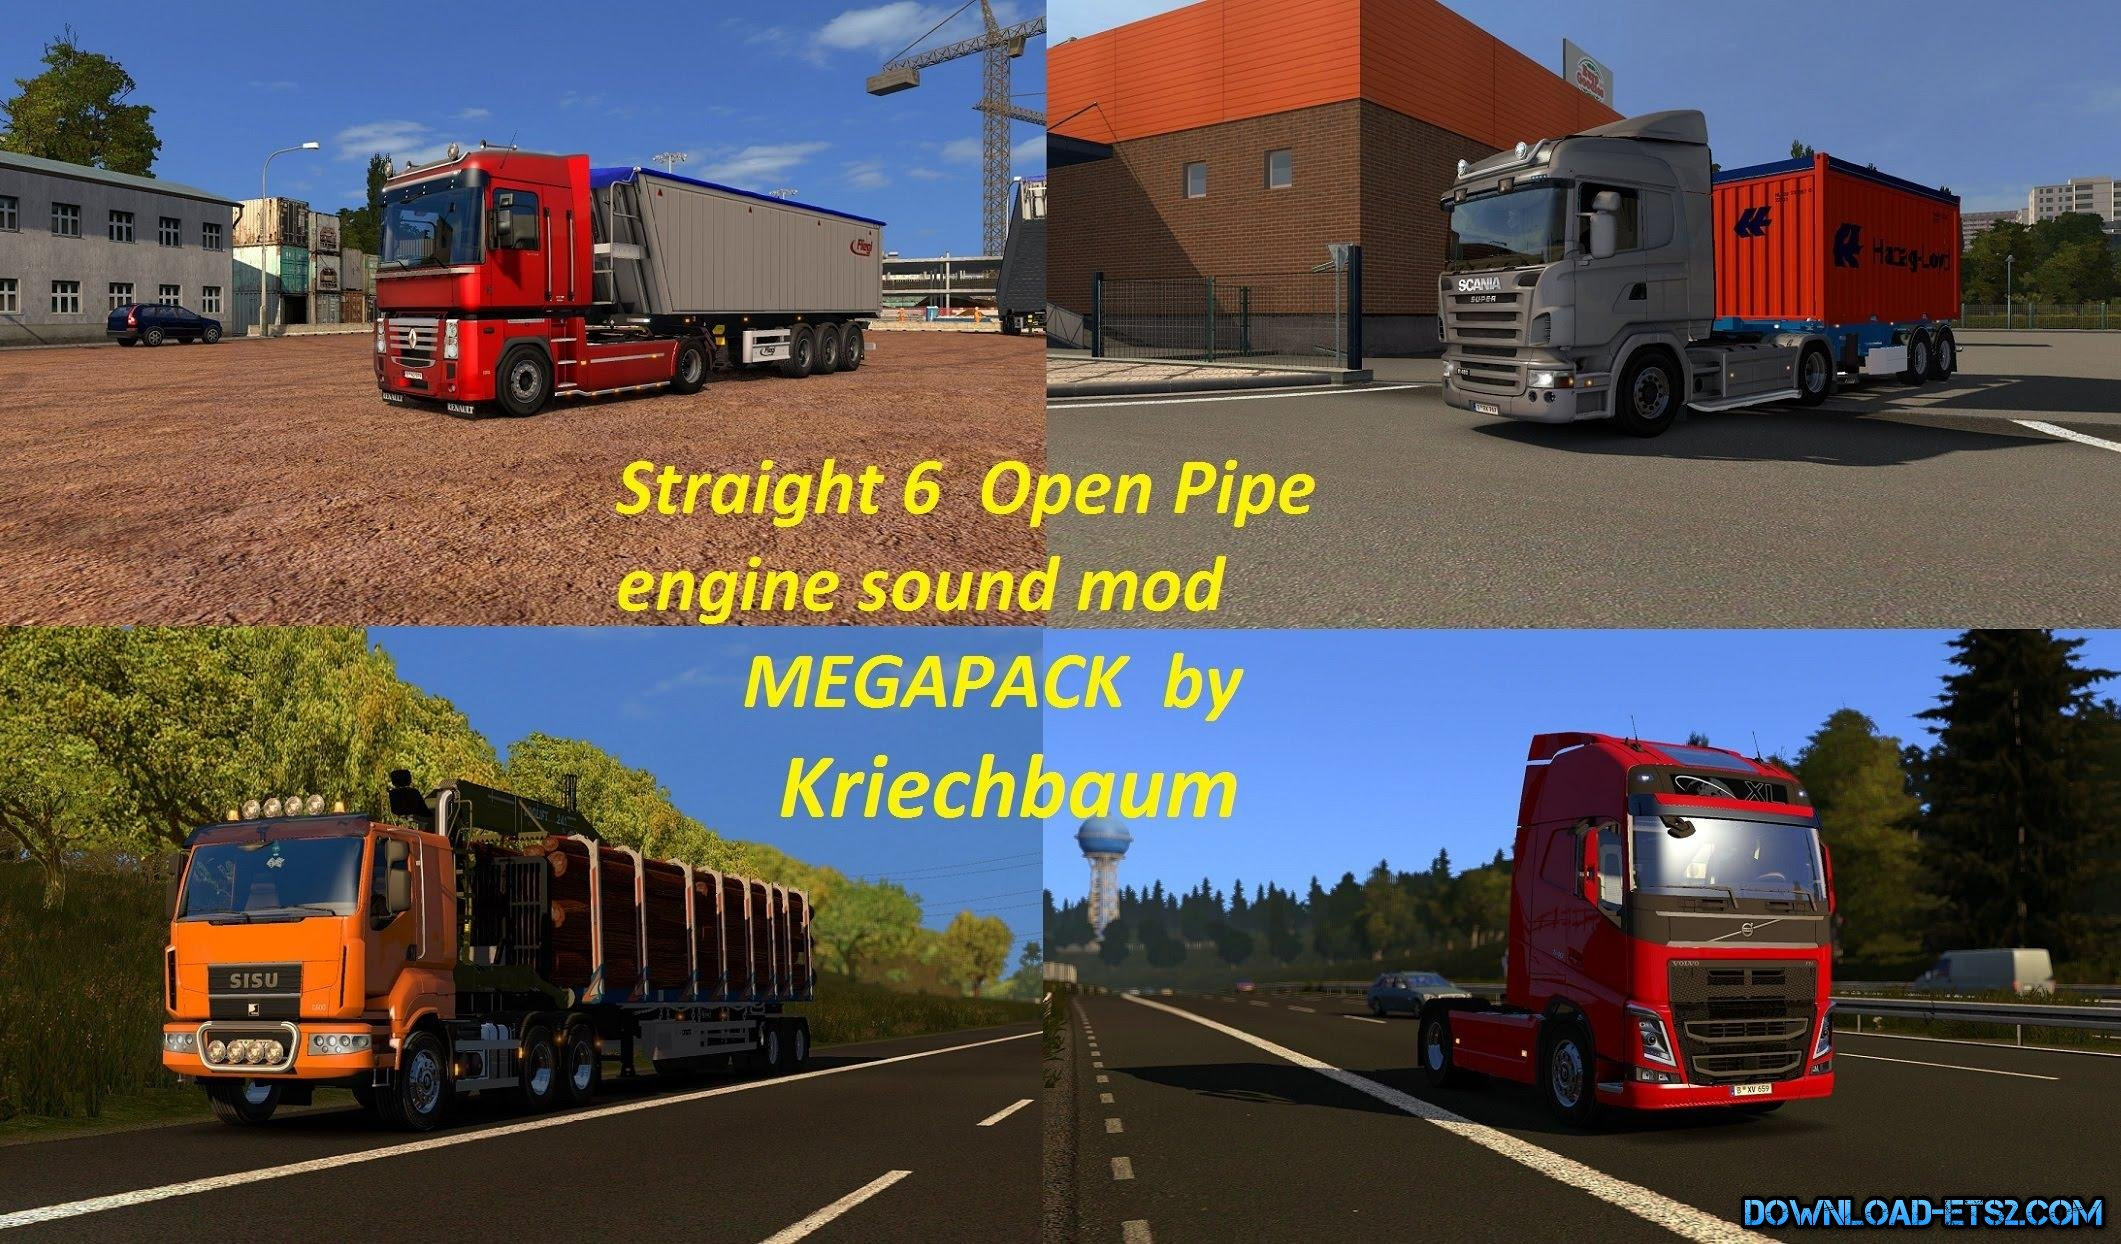 Open Pipe straight 6 engine sounds megapack by kriechbaum